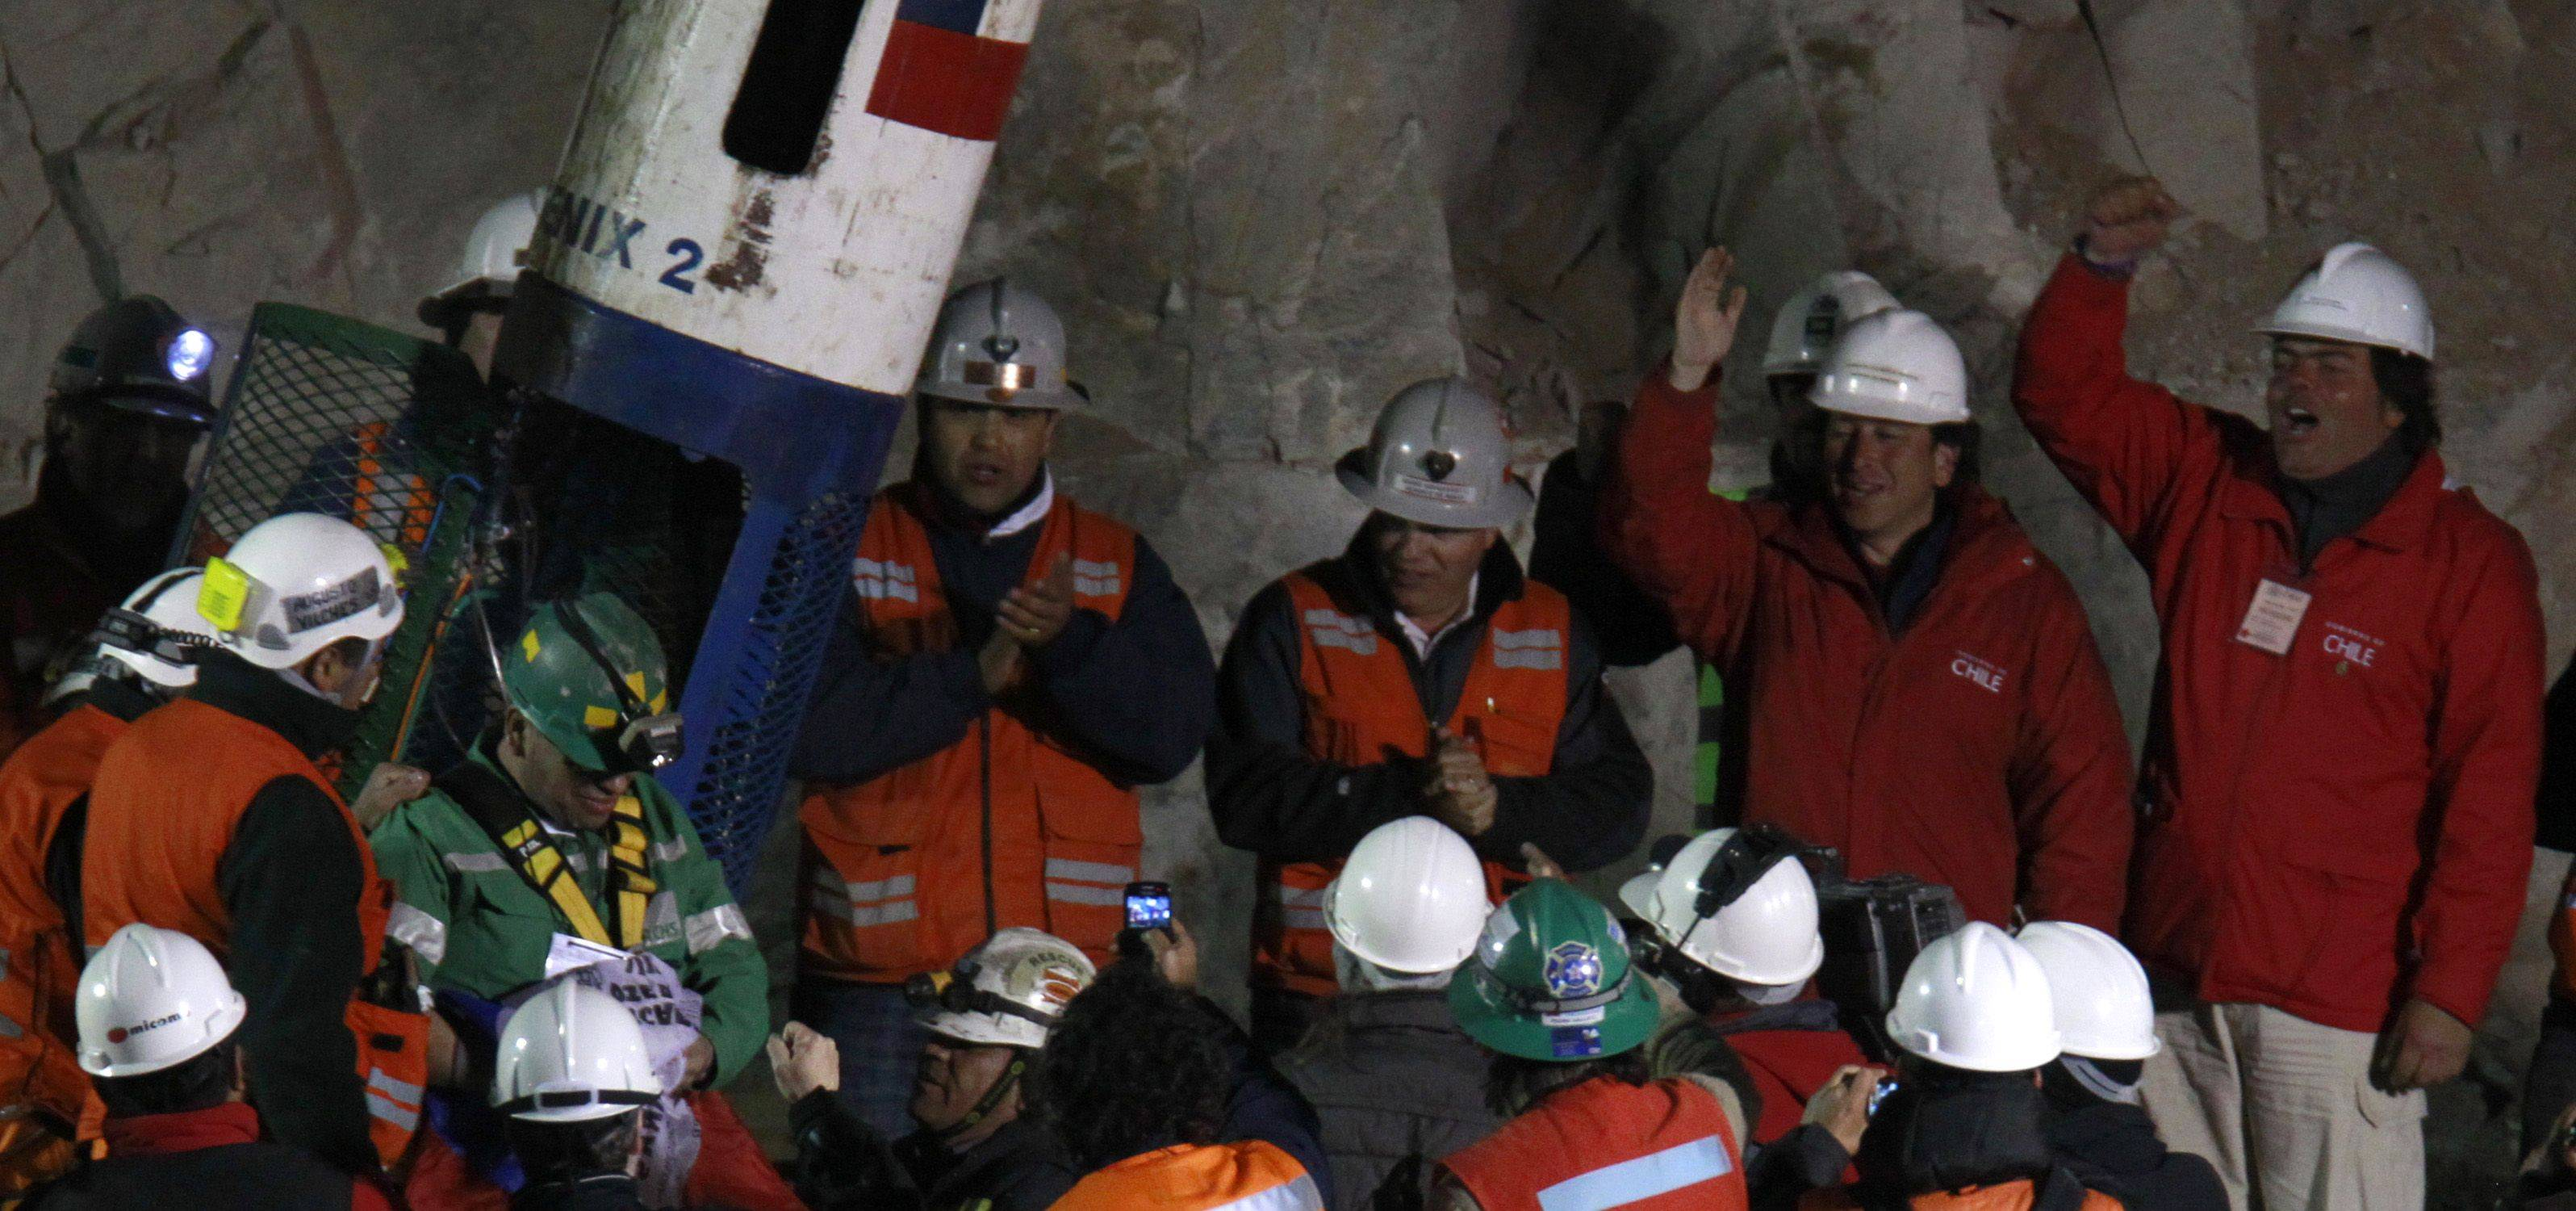 Rescued miner Jose Ojeda, second from left wearing green, exists the capsule that brought him to the surface from the collapsed San Jose gold and copper mine where he was trapped with 32 other miners for over two months near Copiapo, Chile, early Wednesday Oct. 13, 2010.